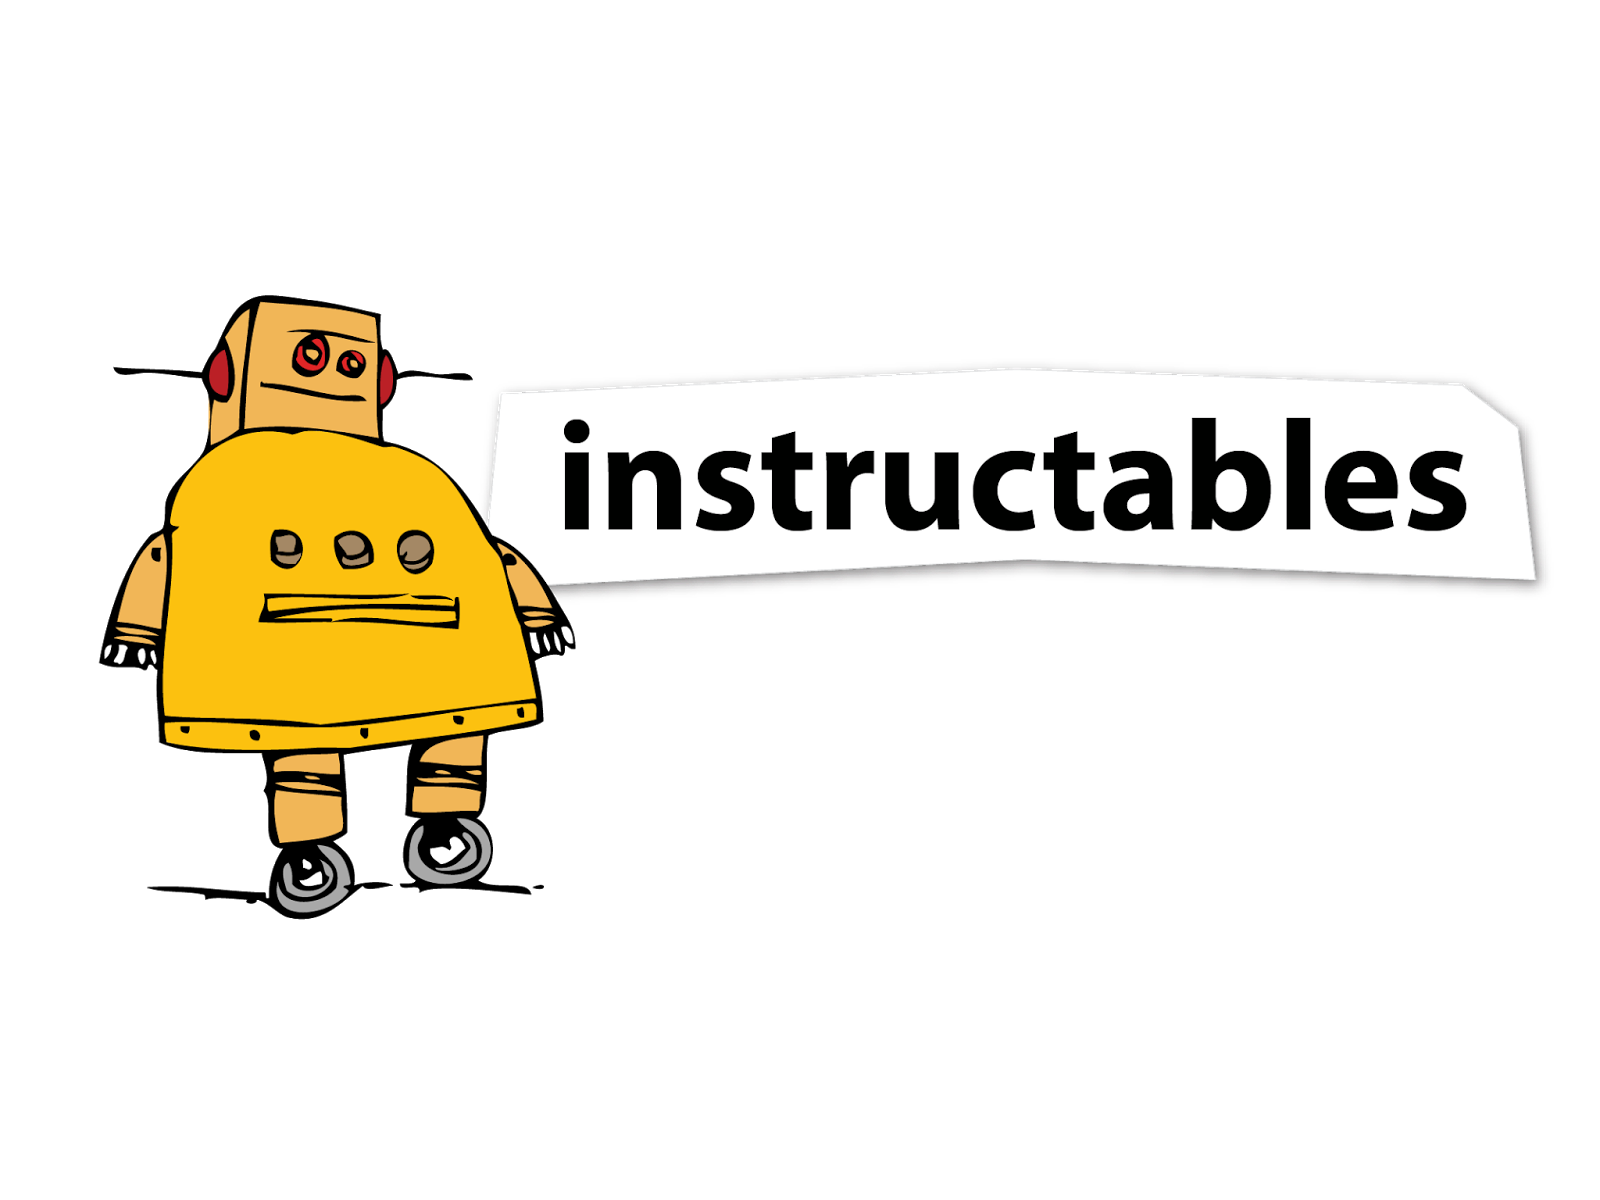 Creatività incontenibile per Natale? Instructables, il regno dei tutorials